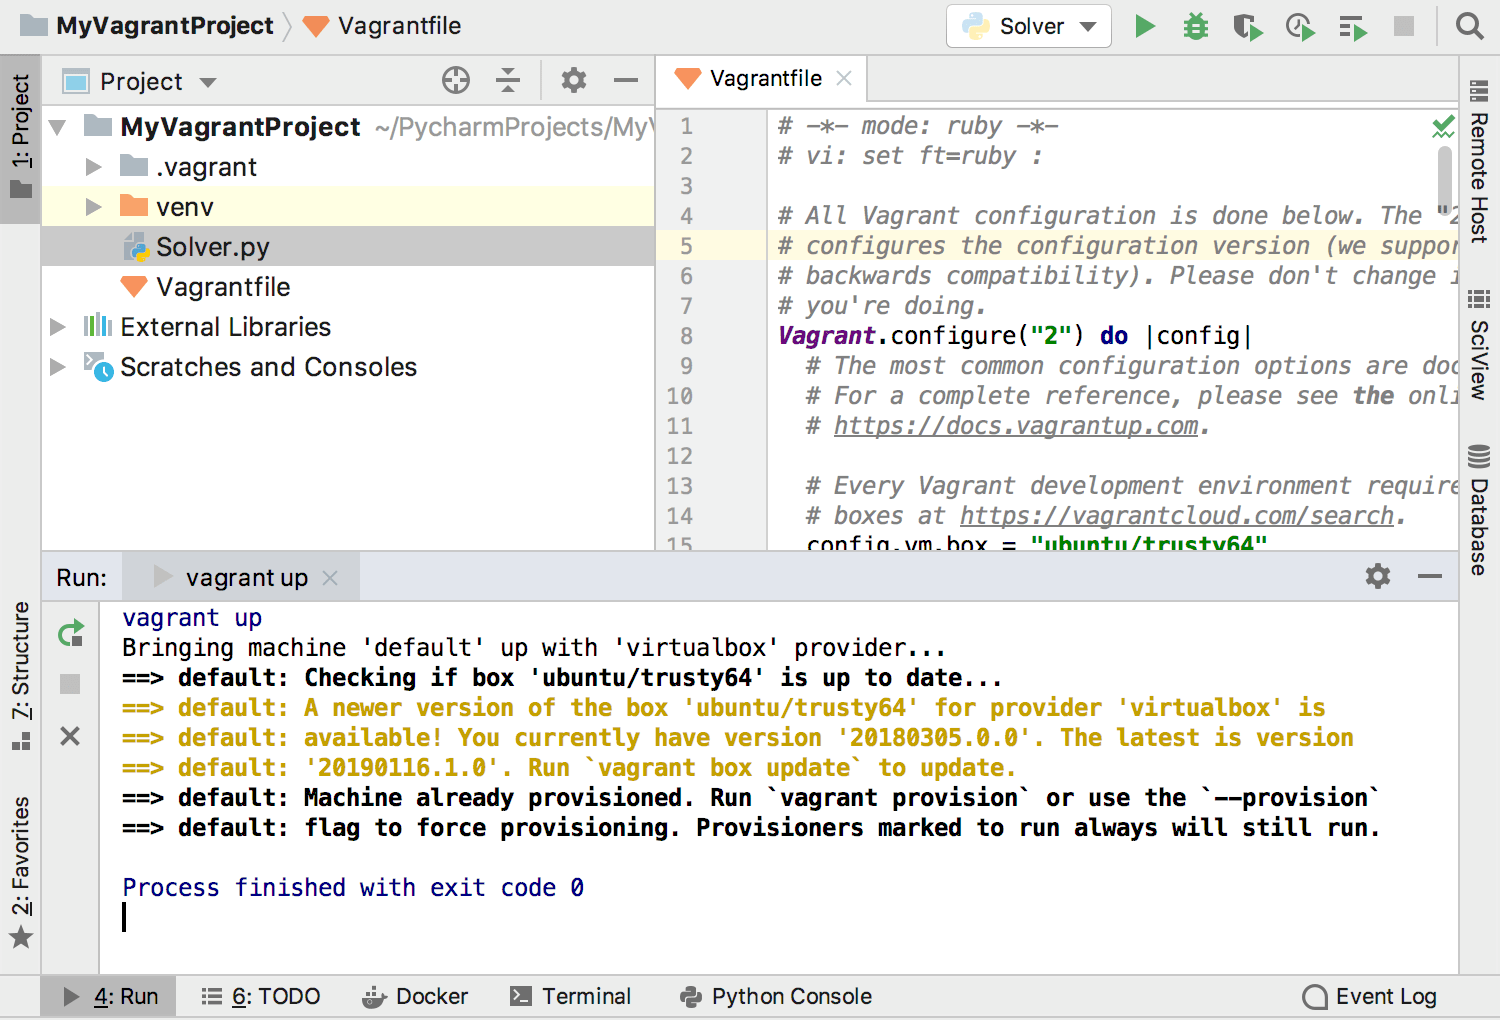 Running the vagrant up command